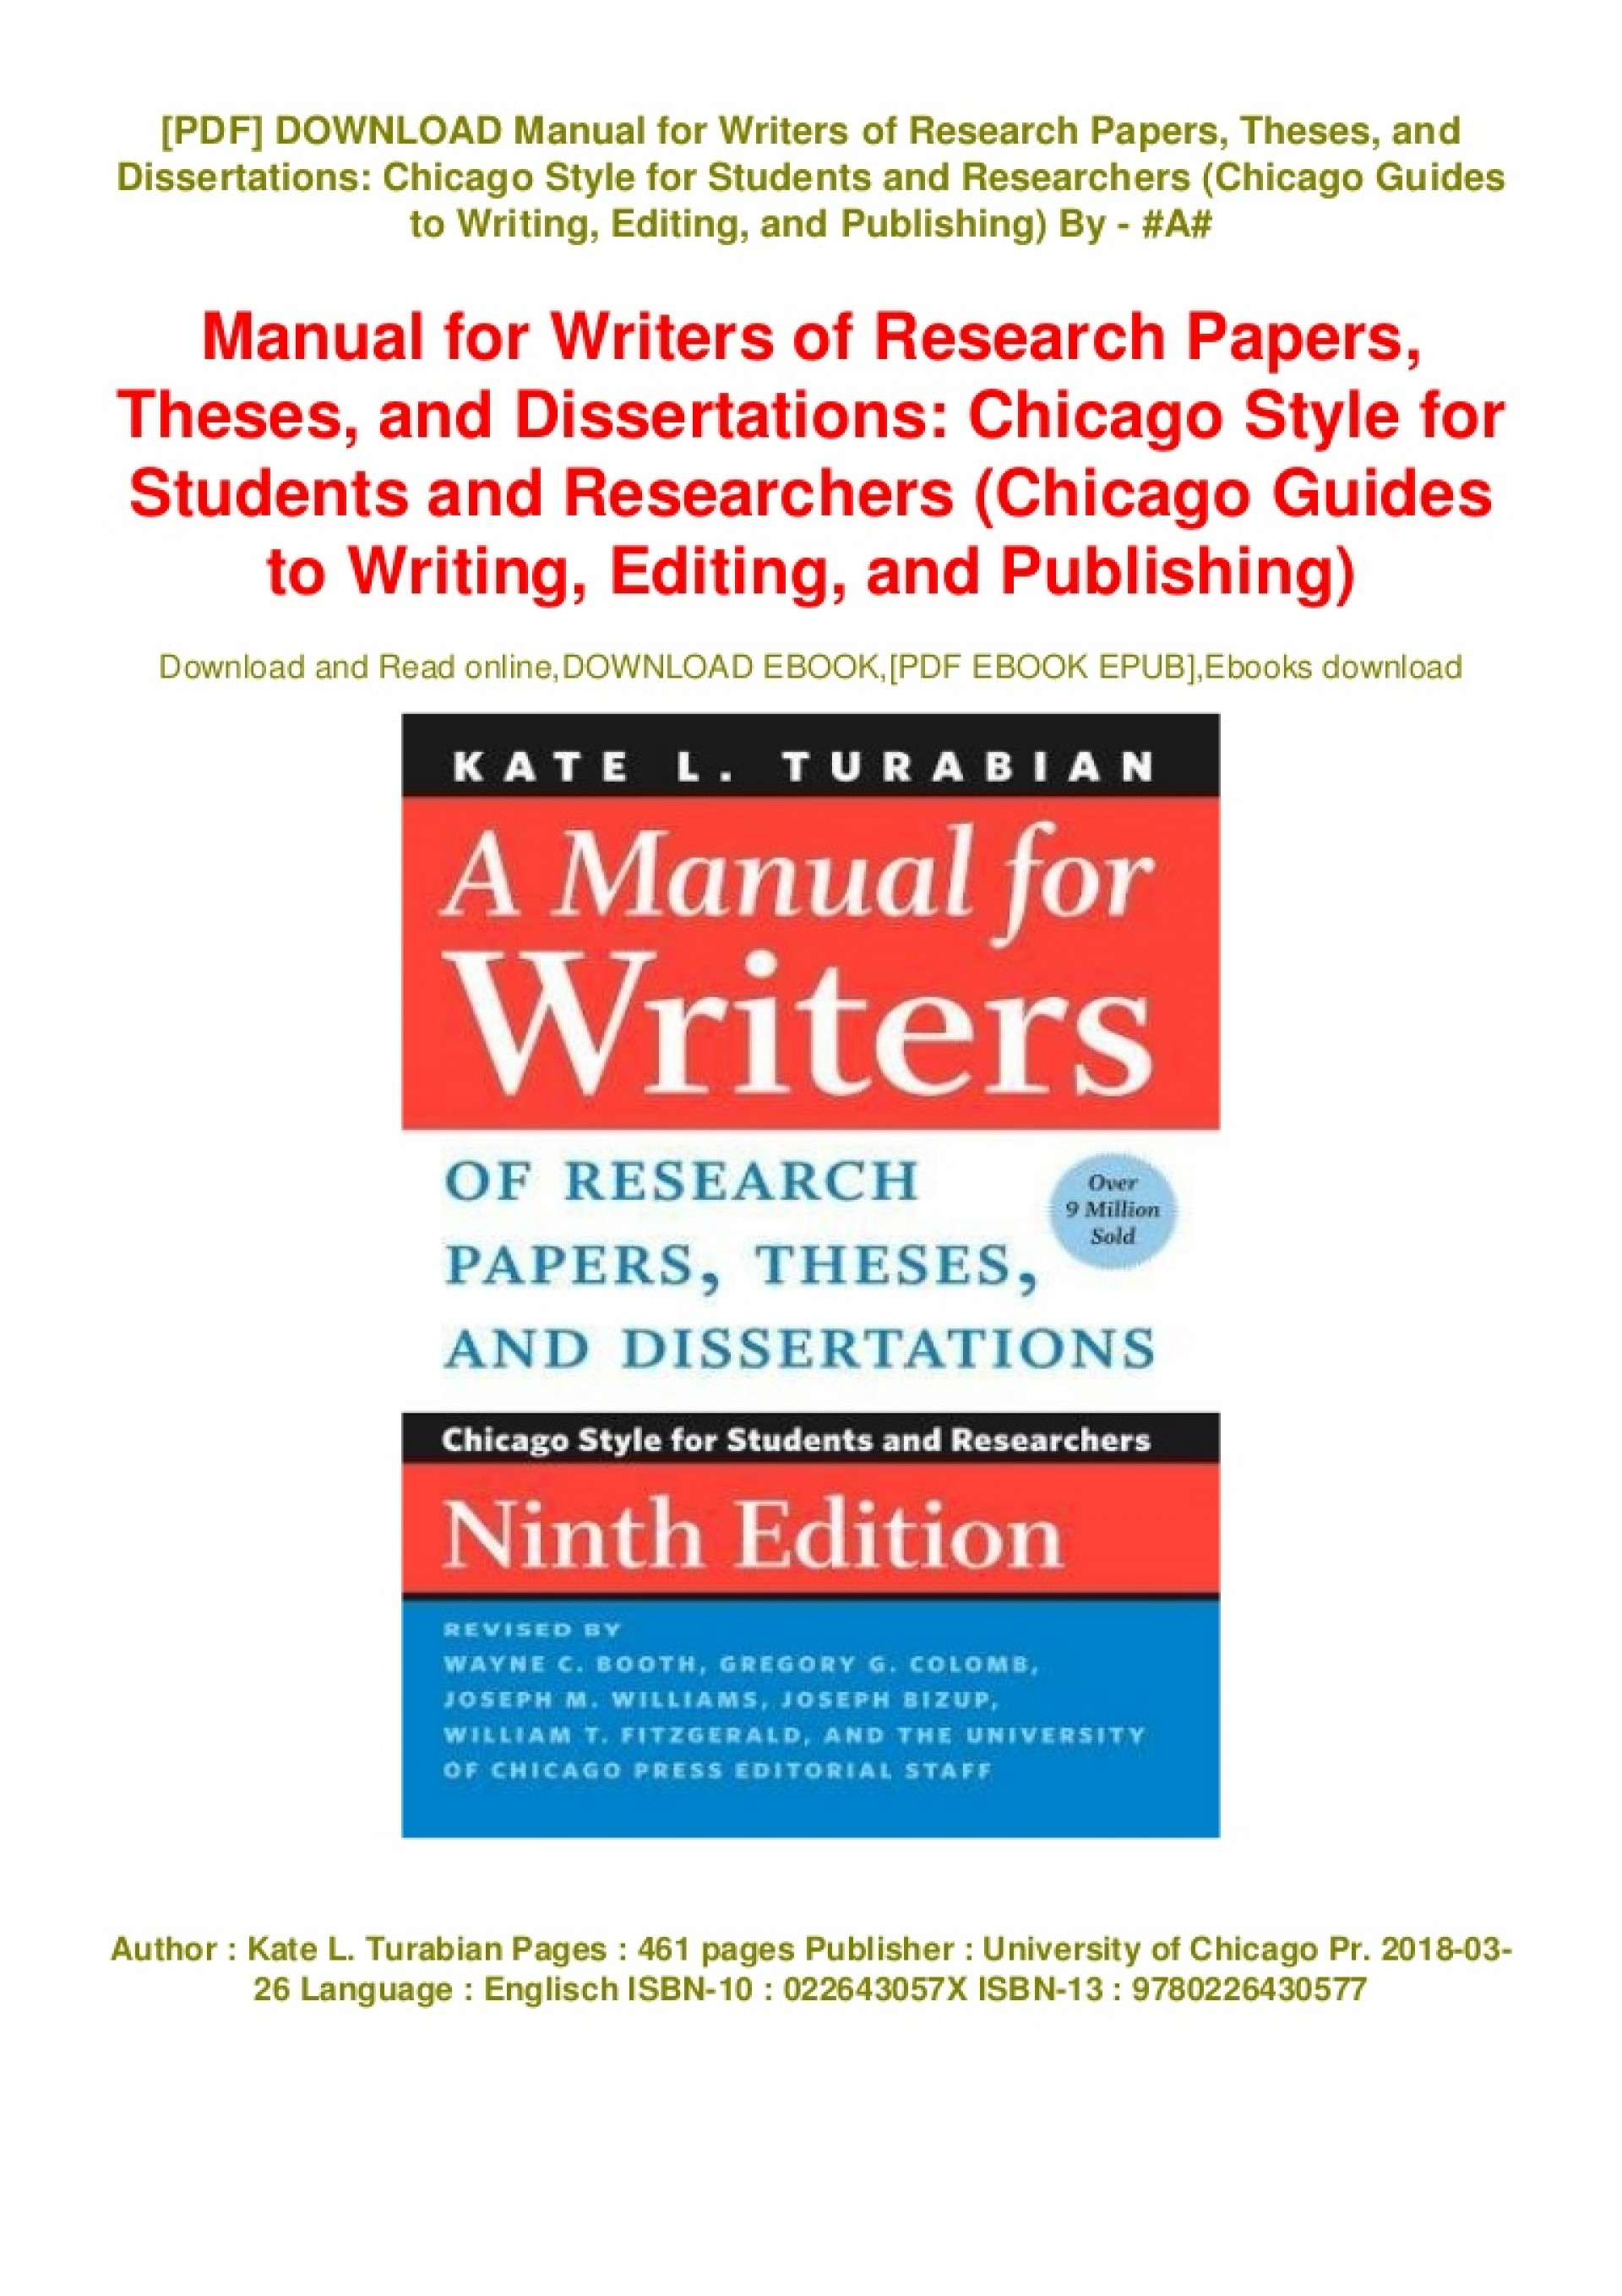 007 Download Manual For Writers Of Research Papersses And Dissertations Chicago Style Students Thumbnail Paper Wonderful A Papers Theses 9th Edition Pdf 1920